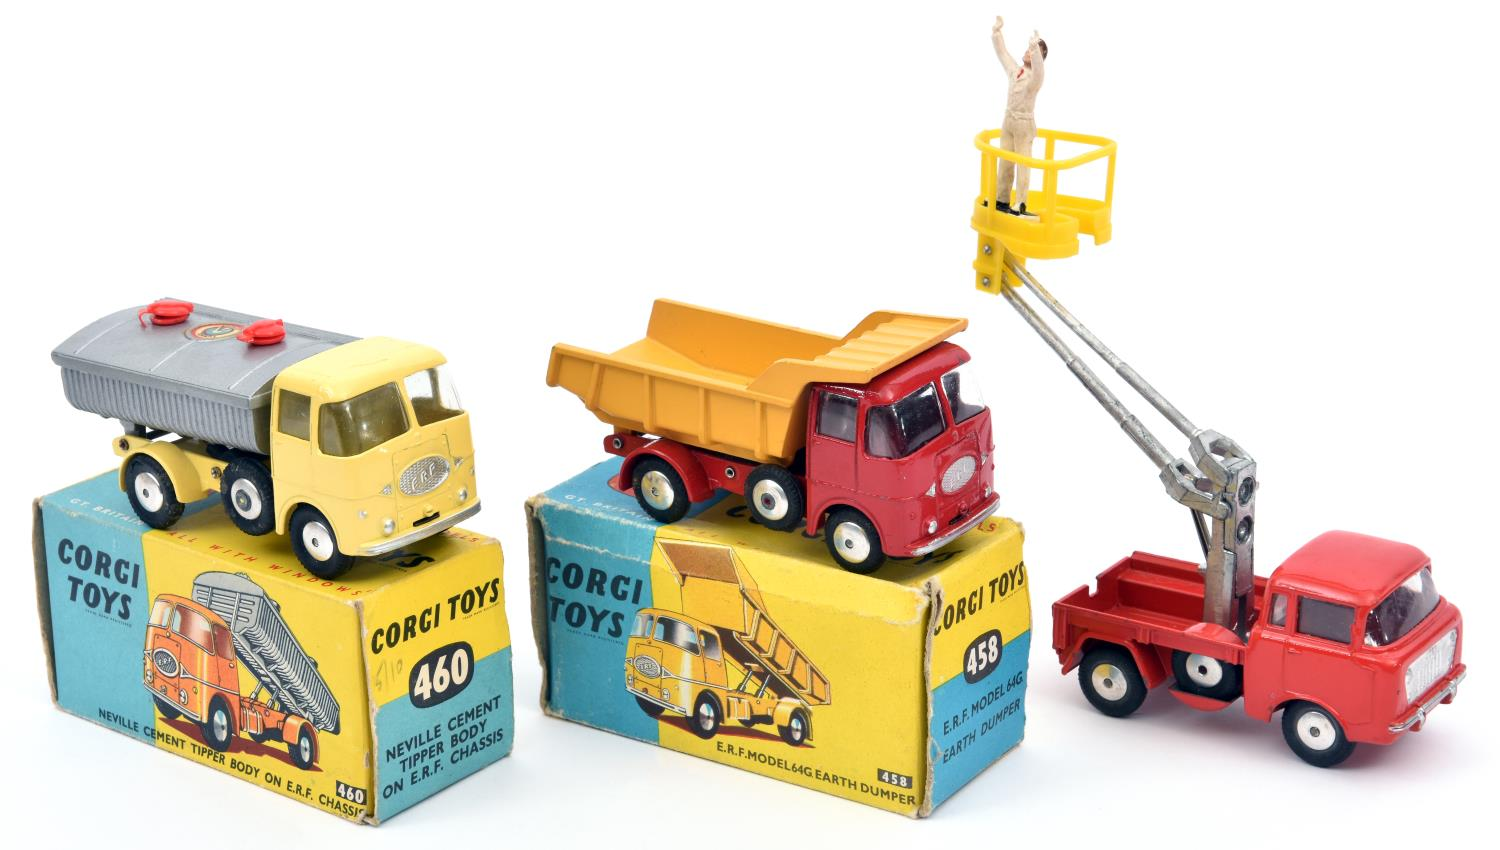 Lot 297 - 3 Corgi Toys. Neville Cement Tipper Body on E.R.F. Chassis (460). In light yellow and silver, with